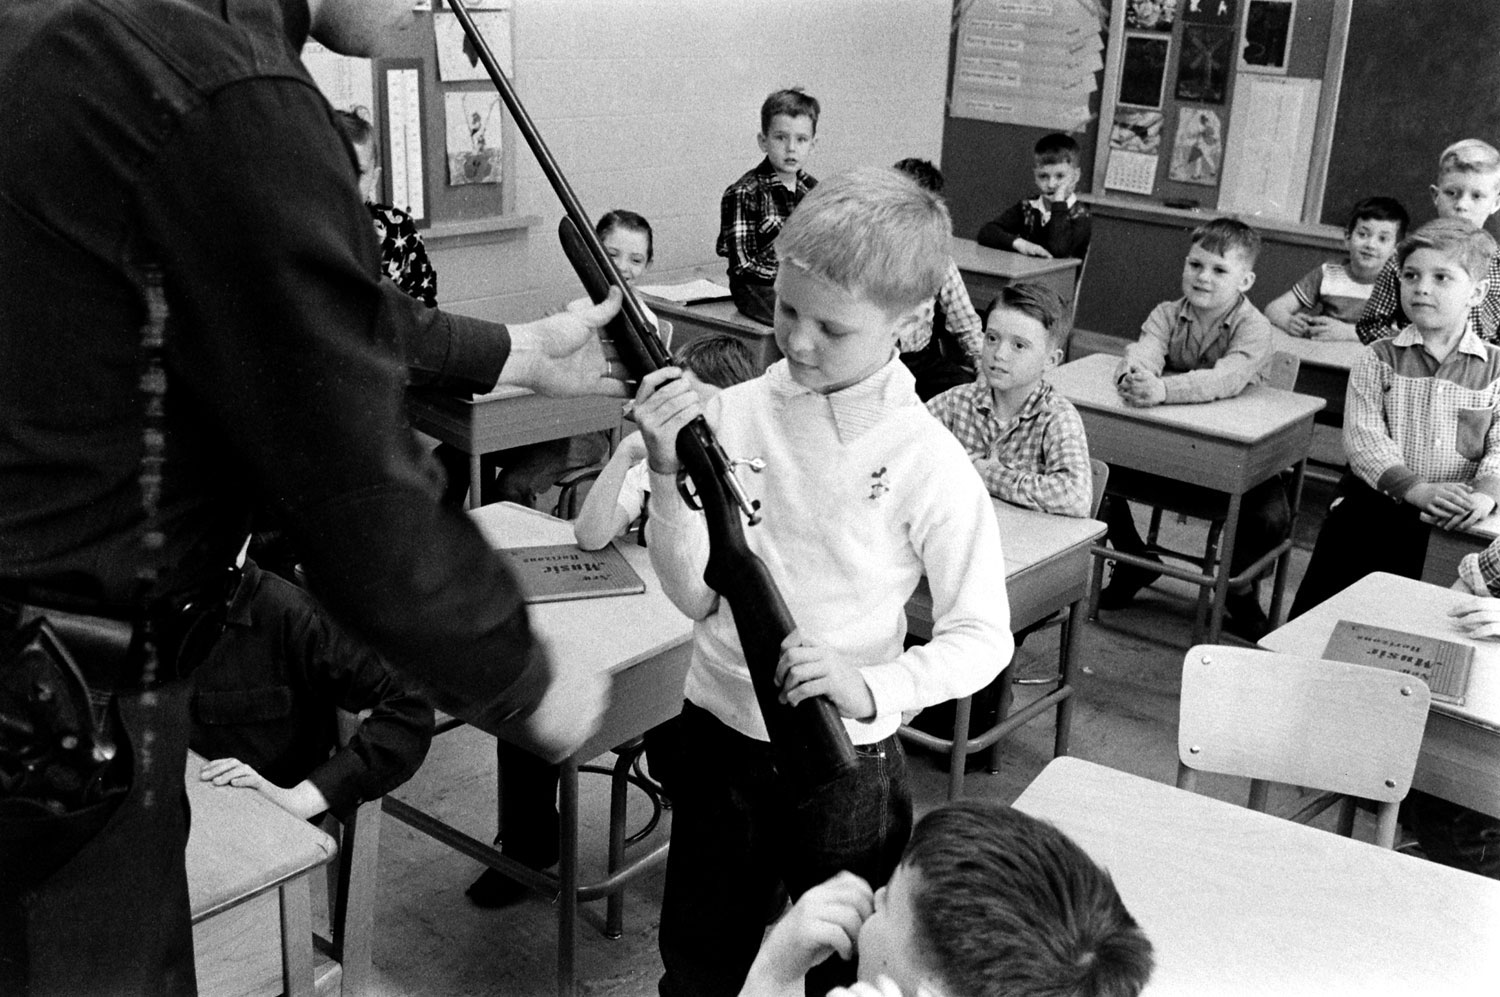 There Was A Time When Kids Were Taught To Respect Firearms